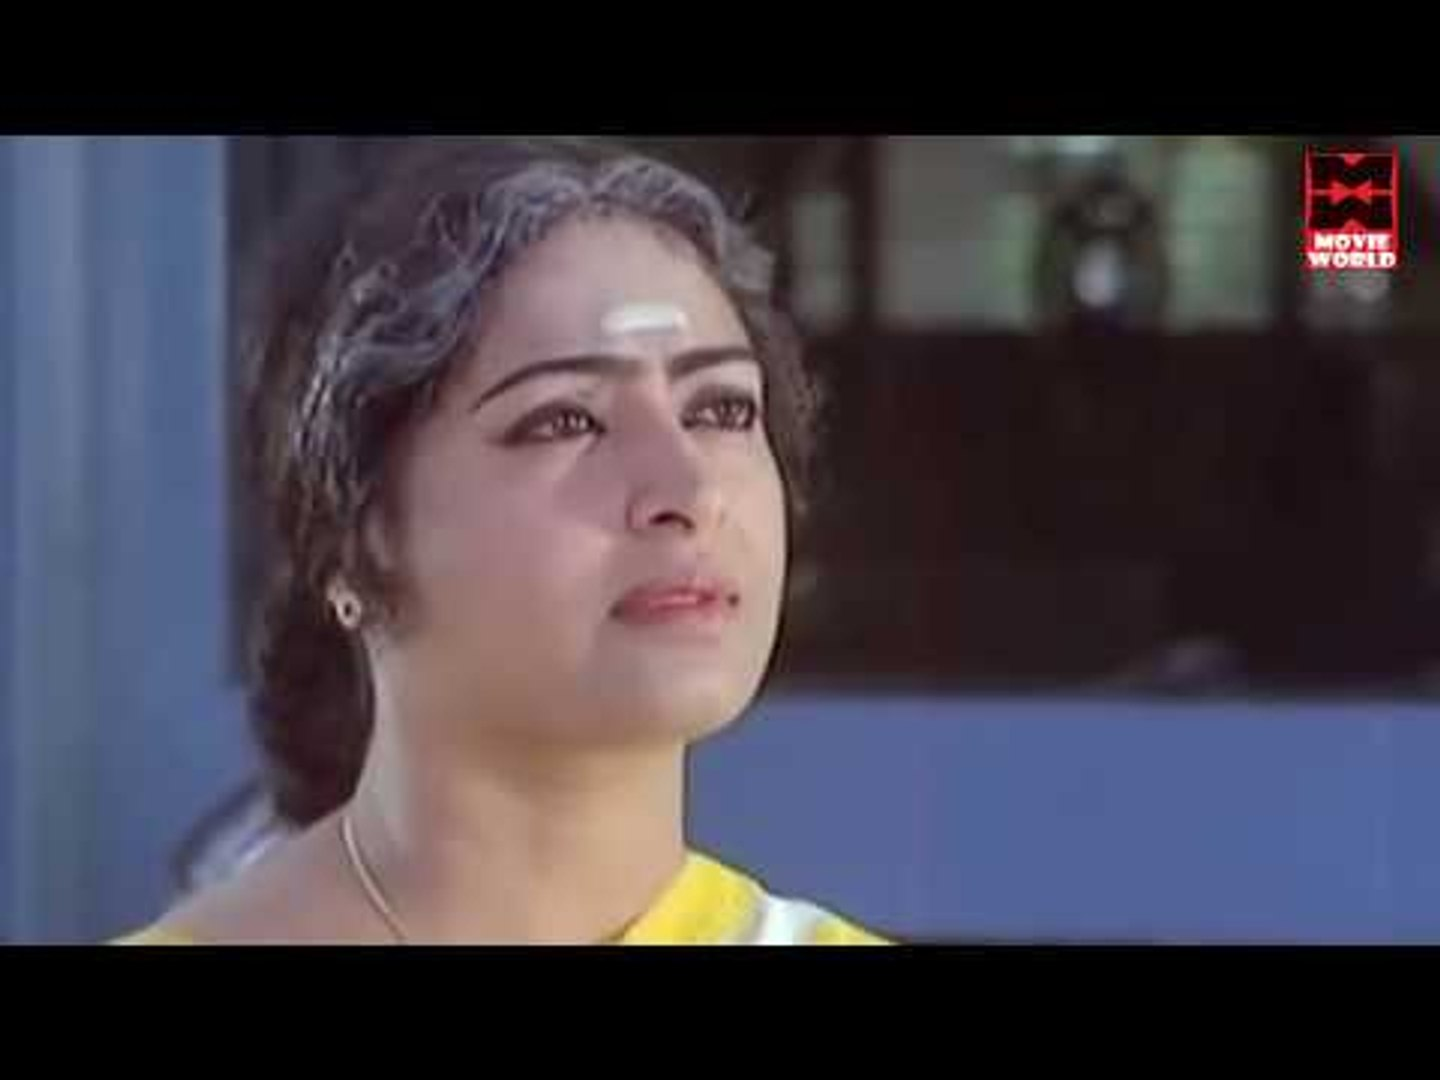 Tamil Full Movie 2016 New # Tamil  Movie 18+ New 2016 # Tamil New Movies 2016 Full Movie HD 1080p